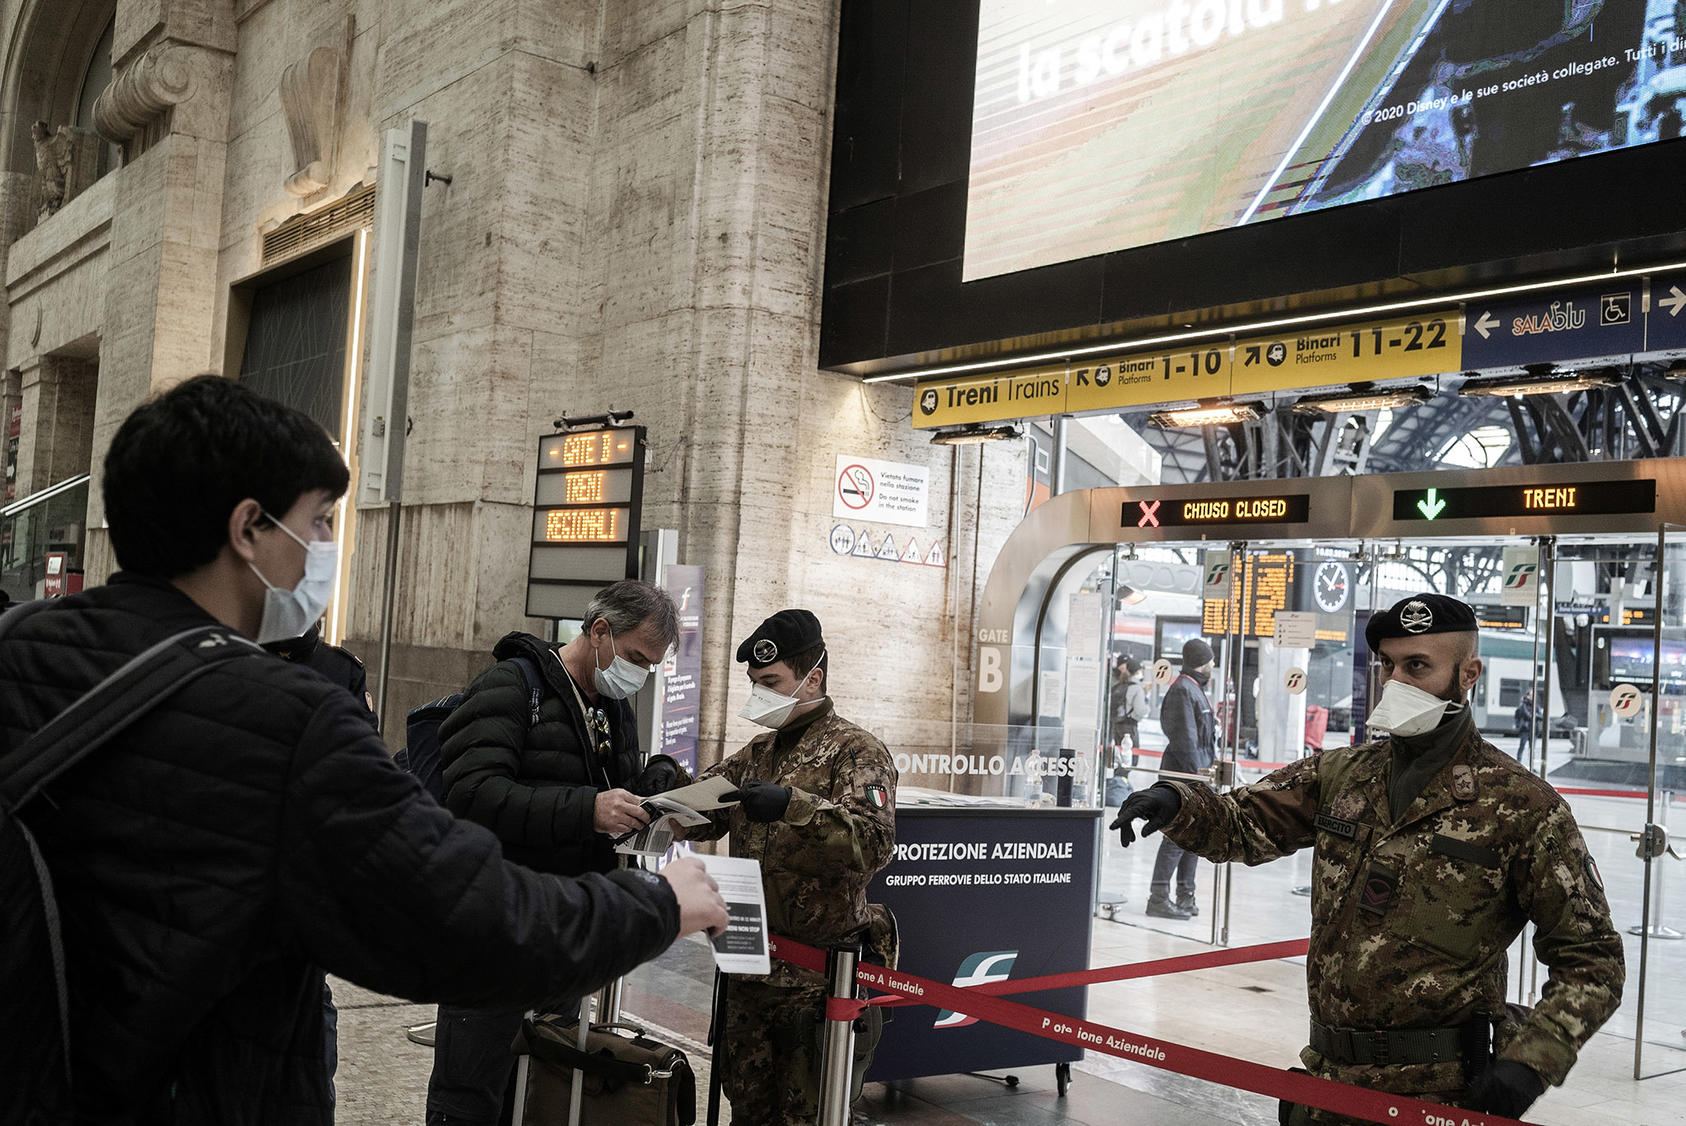 Security forces check passengers at the train station in Milan, March 10, 2020. (Alessandro Grassani/The New York Times)